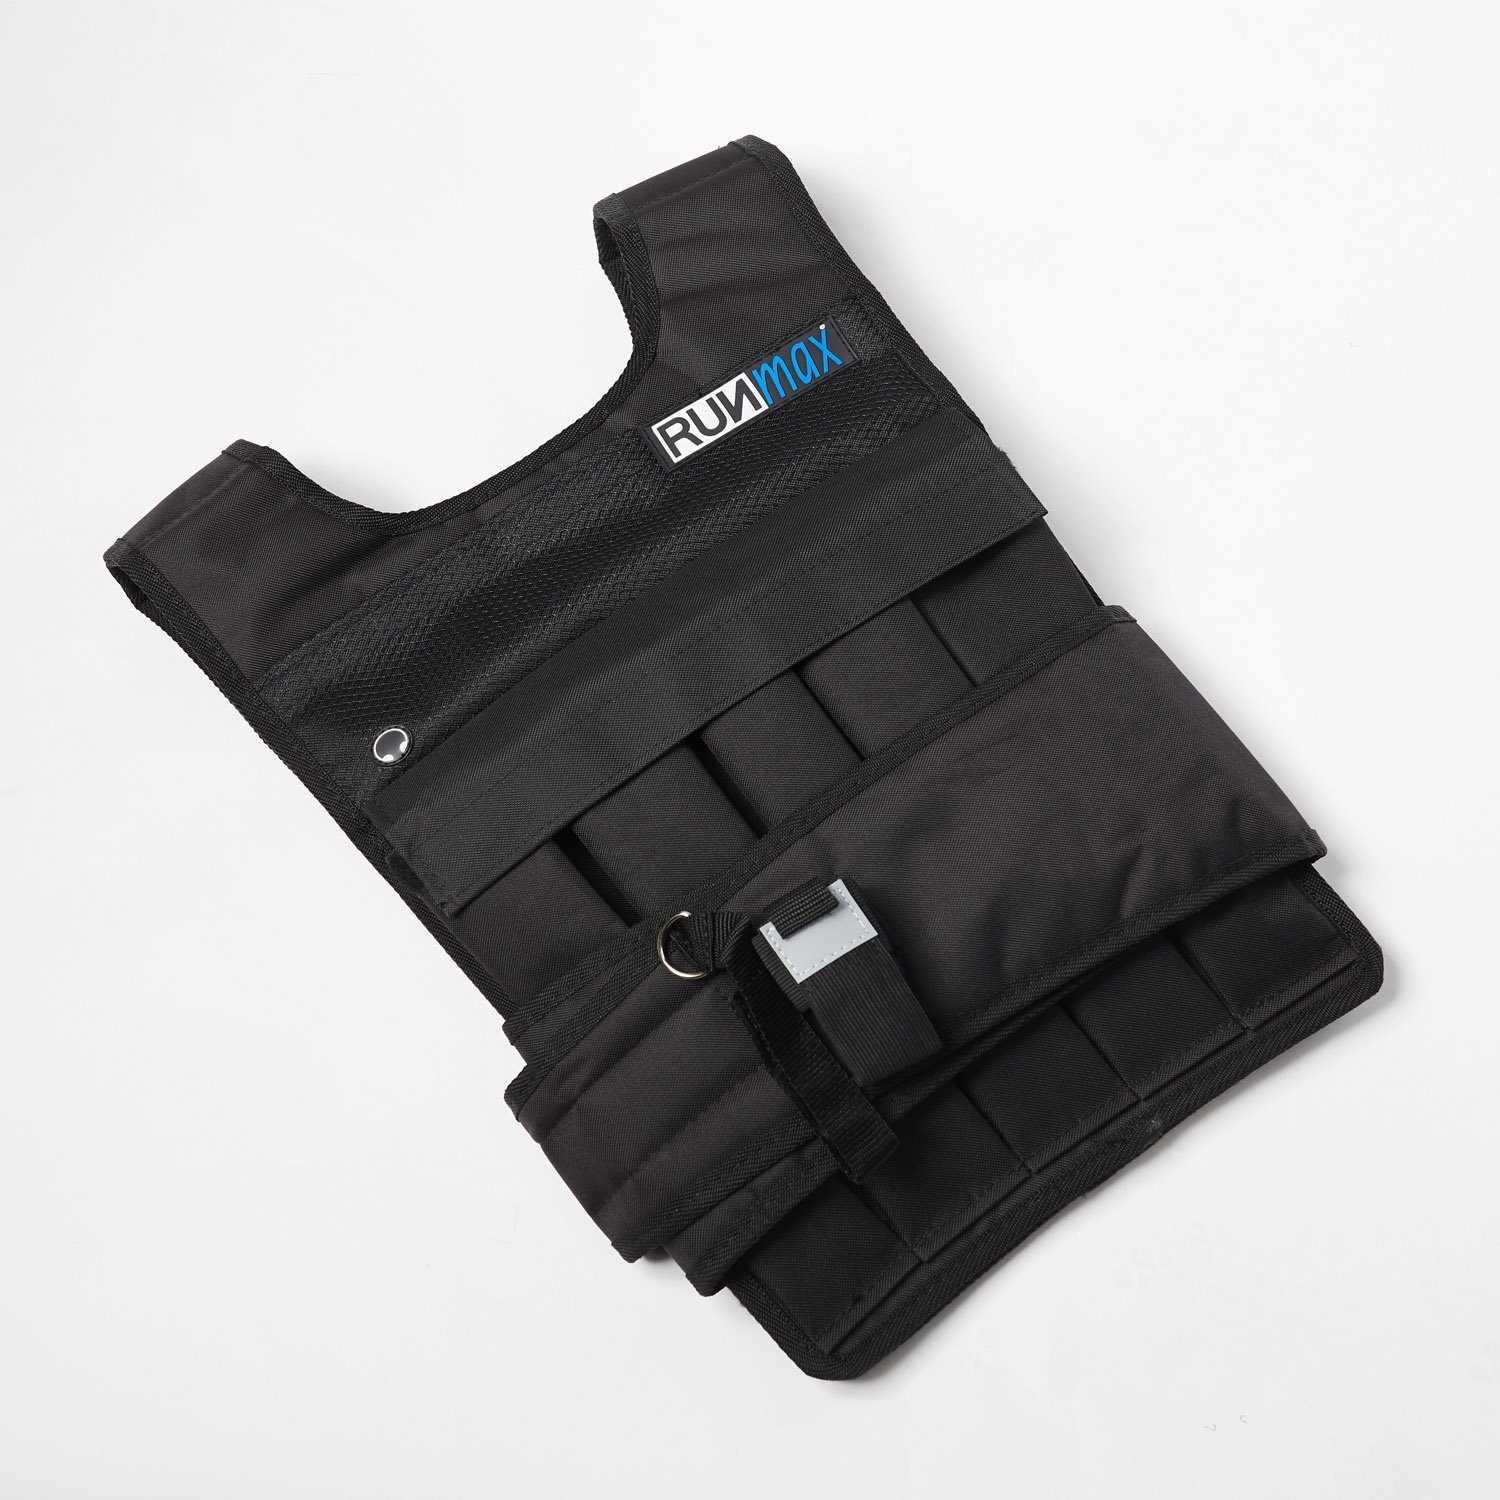 4 best weighted vests for running and crossfit that will change the way U train 2